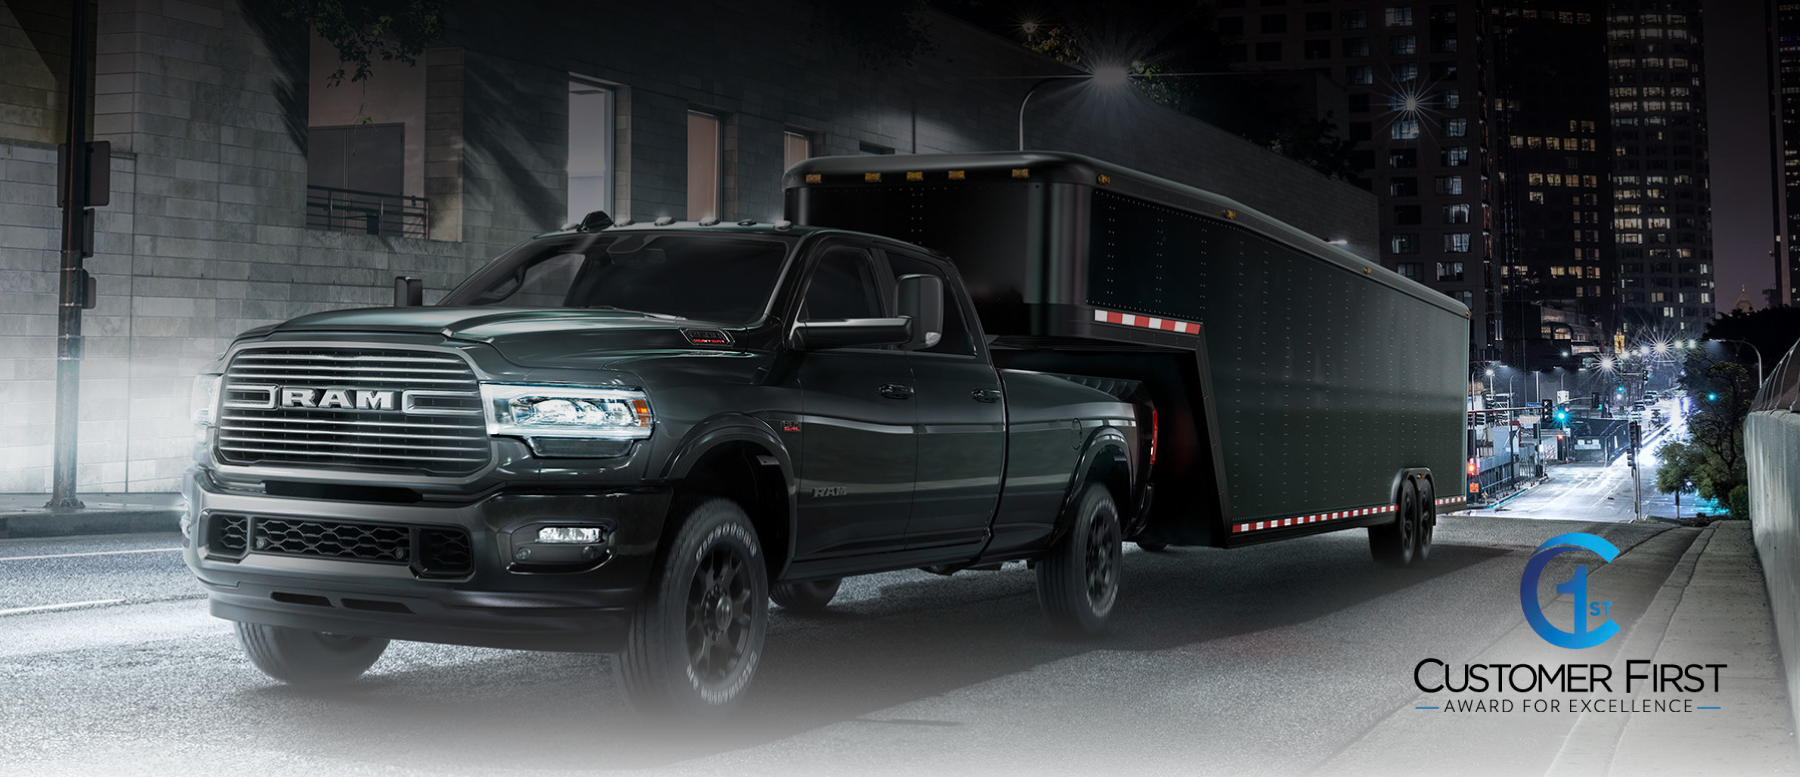 Chrysler Dodge Jeep RAM Dealer | Houston, TX | Northwest Chrysler